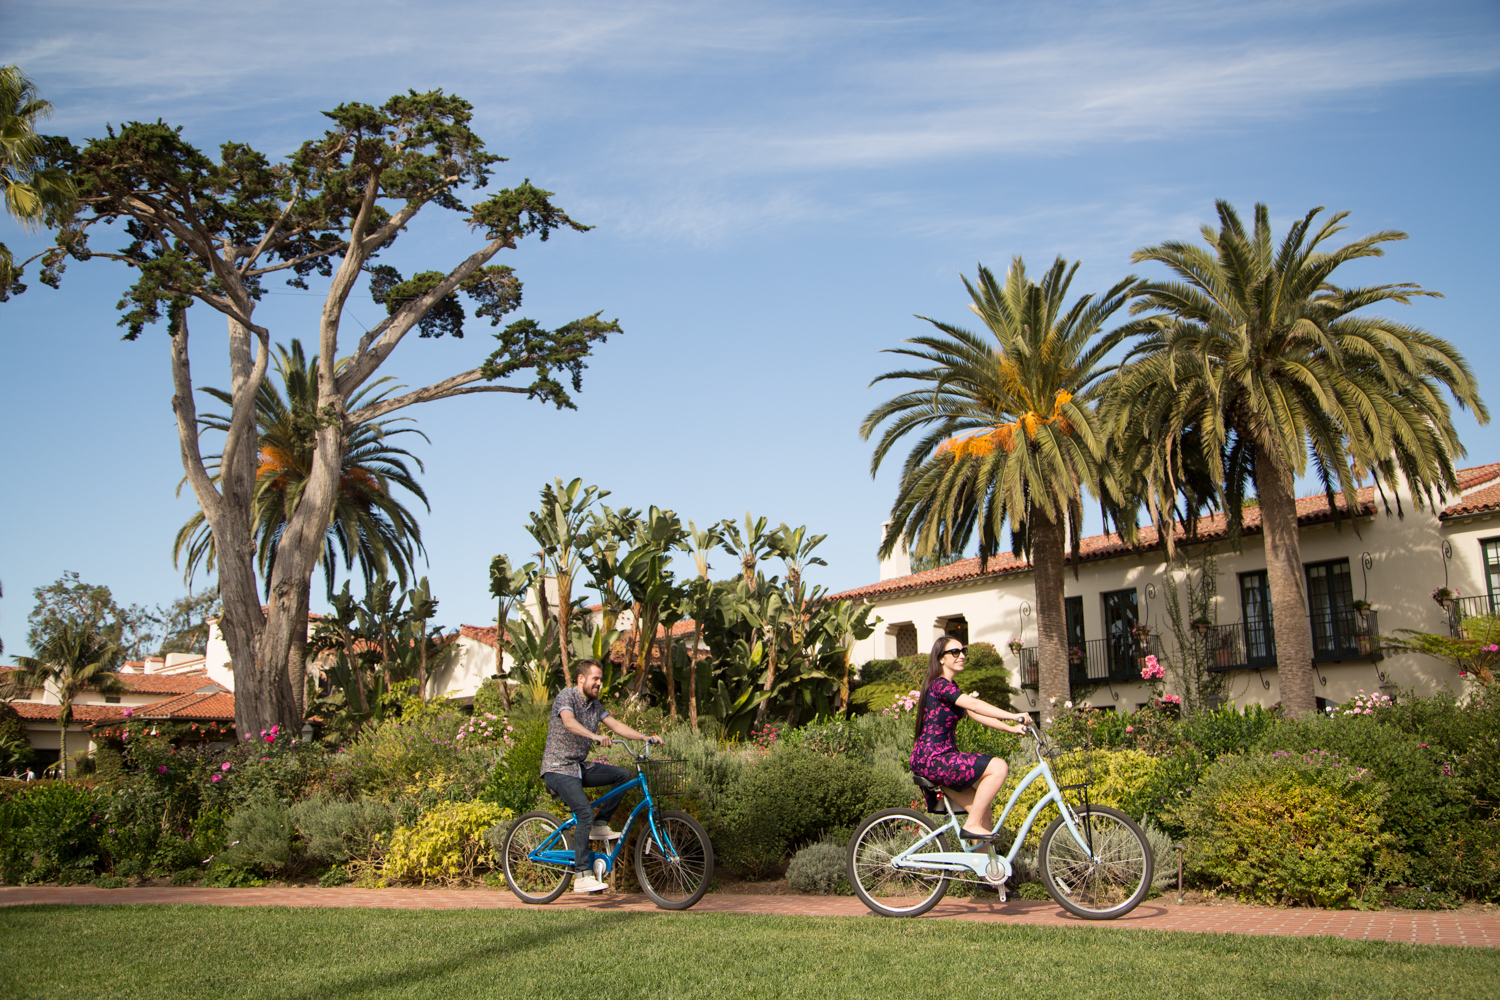 Four Seasons The Biltmore Santa Barbara Bike Rentals Review